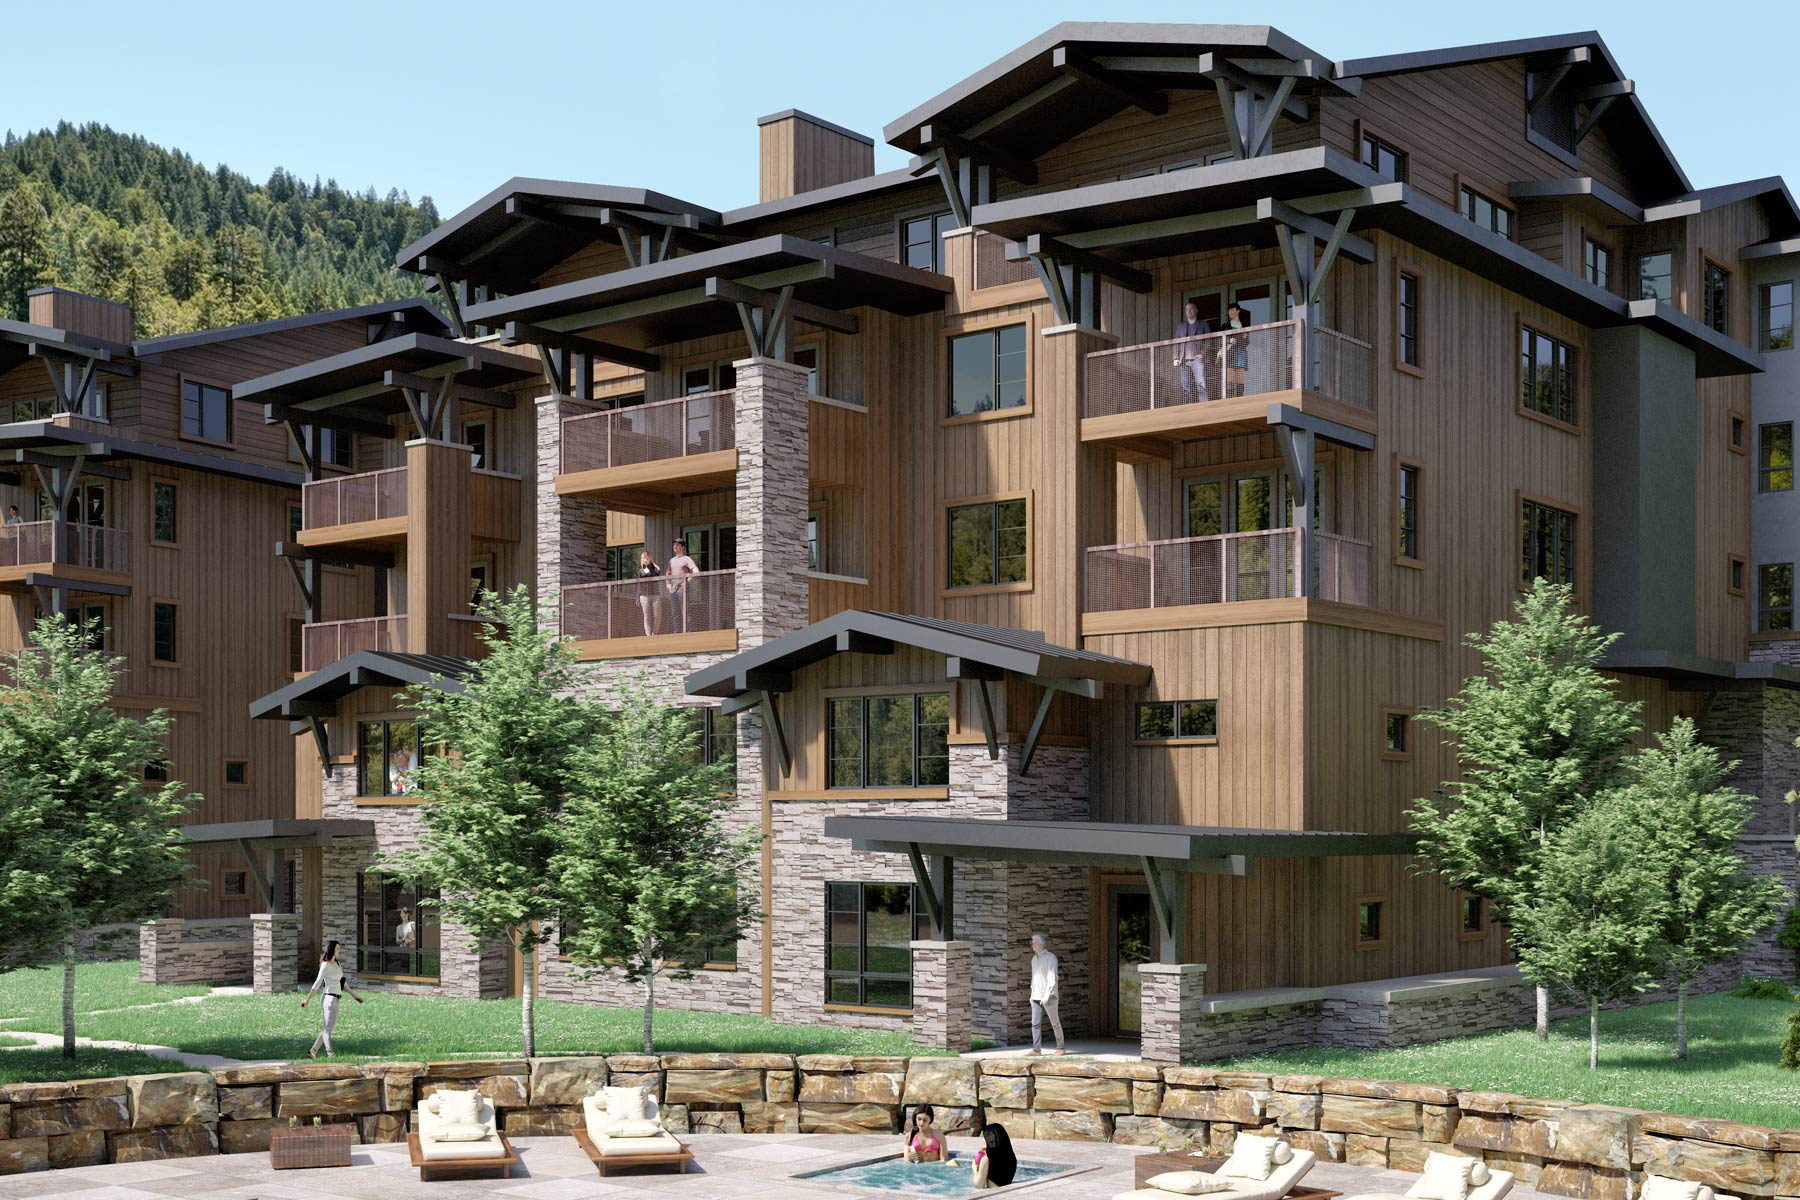 Condominium for Sale at New Construction Mountain Lake Condo 2 Summit View Road Unit 401 Big Sky, Montana 59716 United States